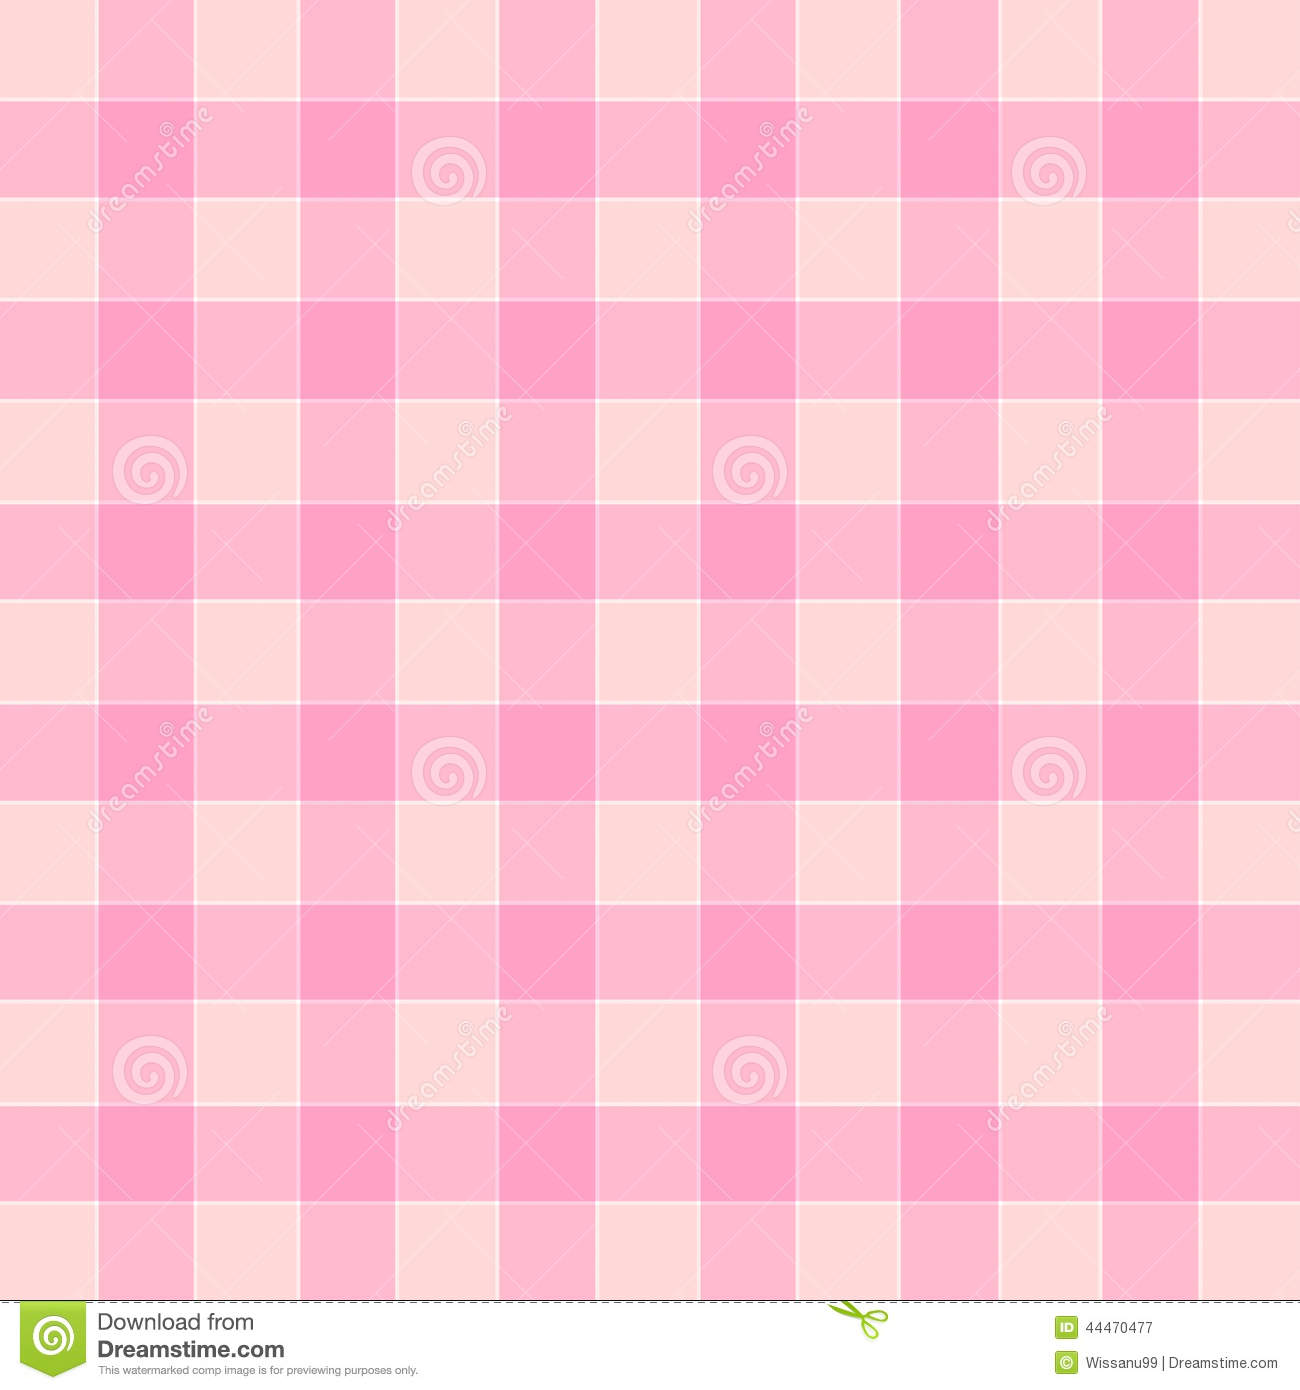 Colors That Compliment Pink plaid color match pink tone stock vector - image: 44470477